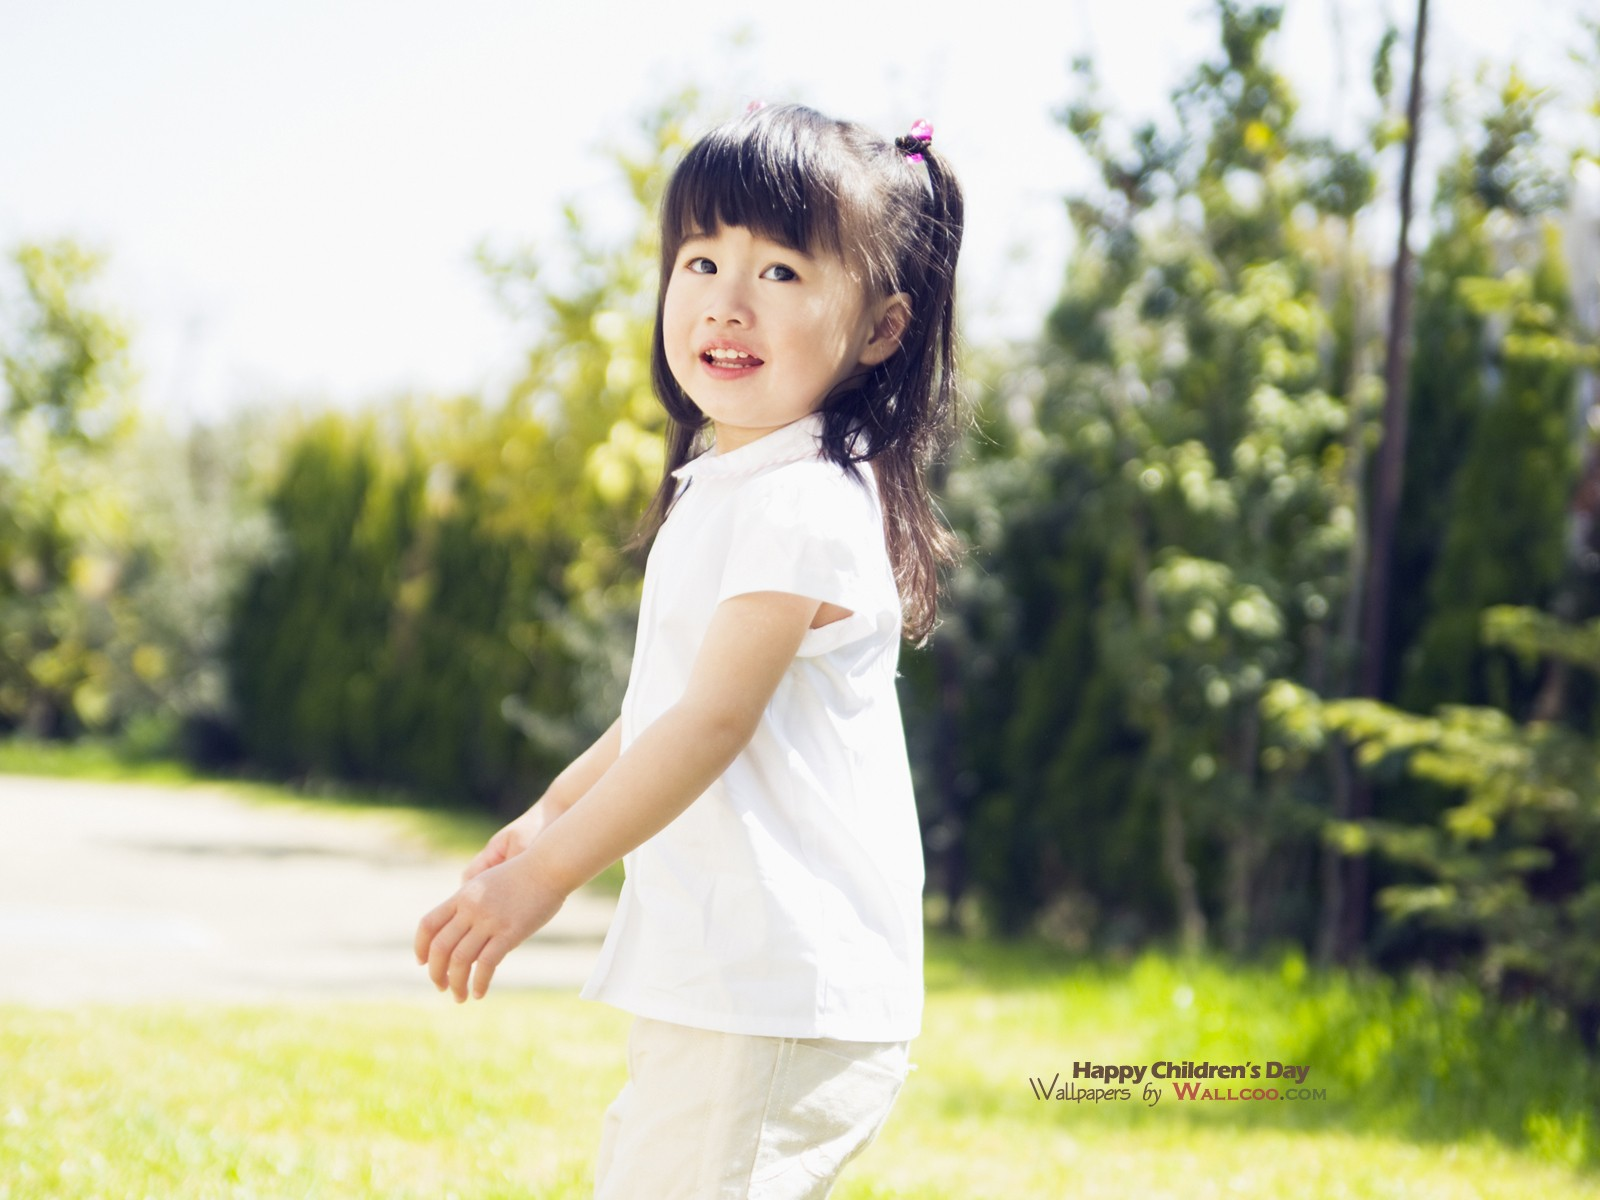 hd asian children photography, asian children wallpaper, lovely